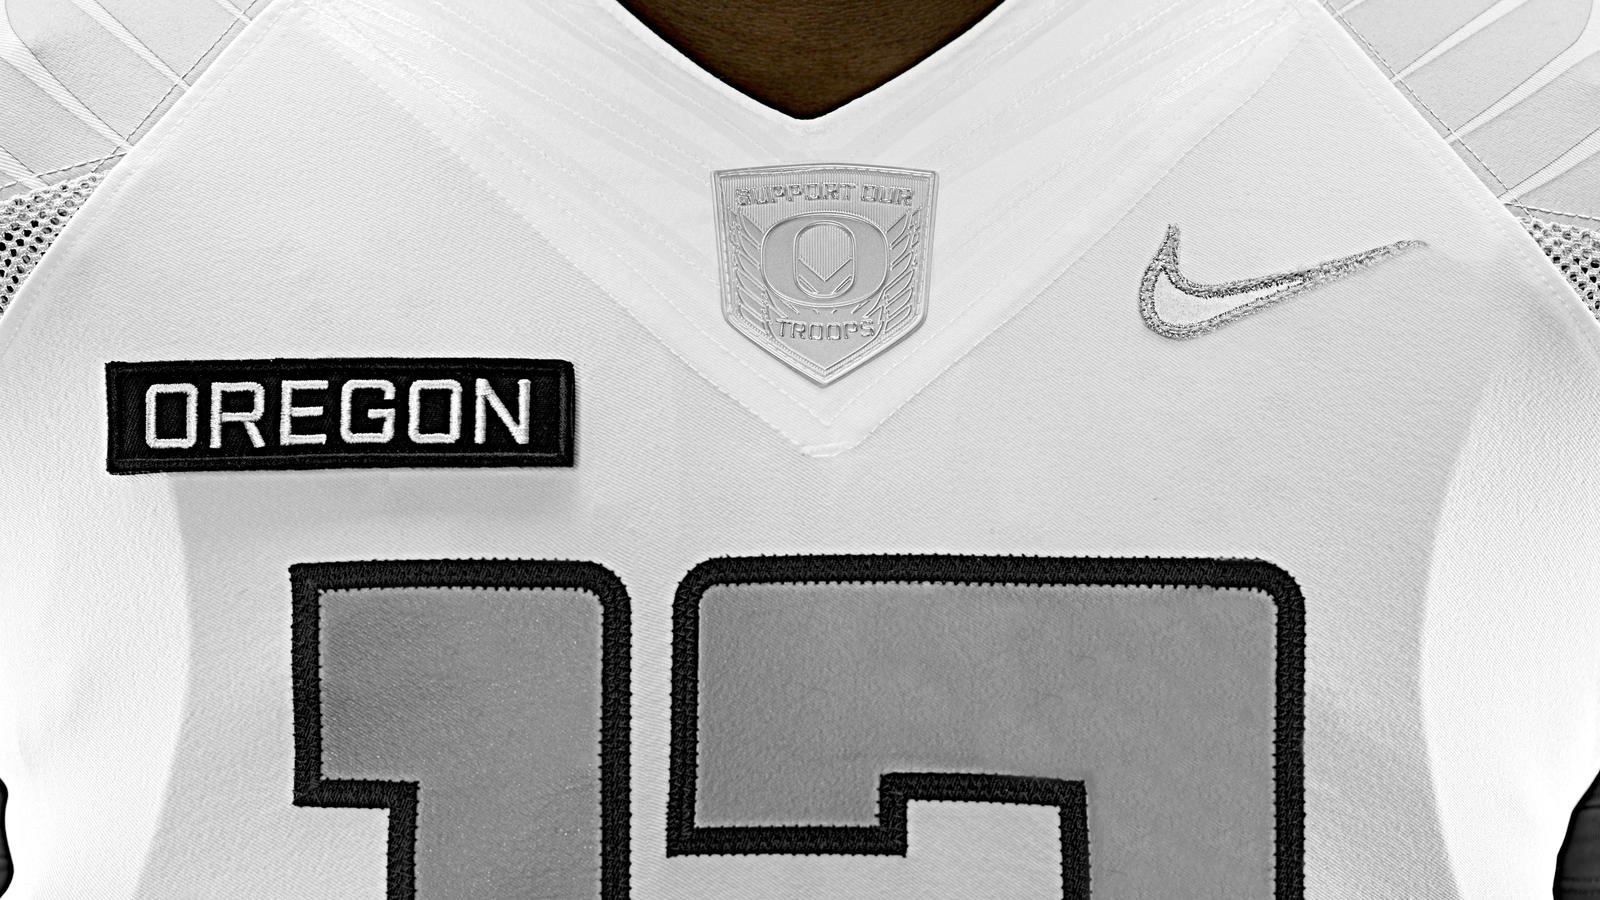 nike-football-uniform-uofo-home-front-detail